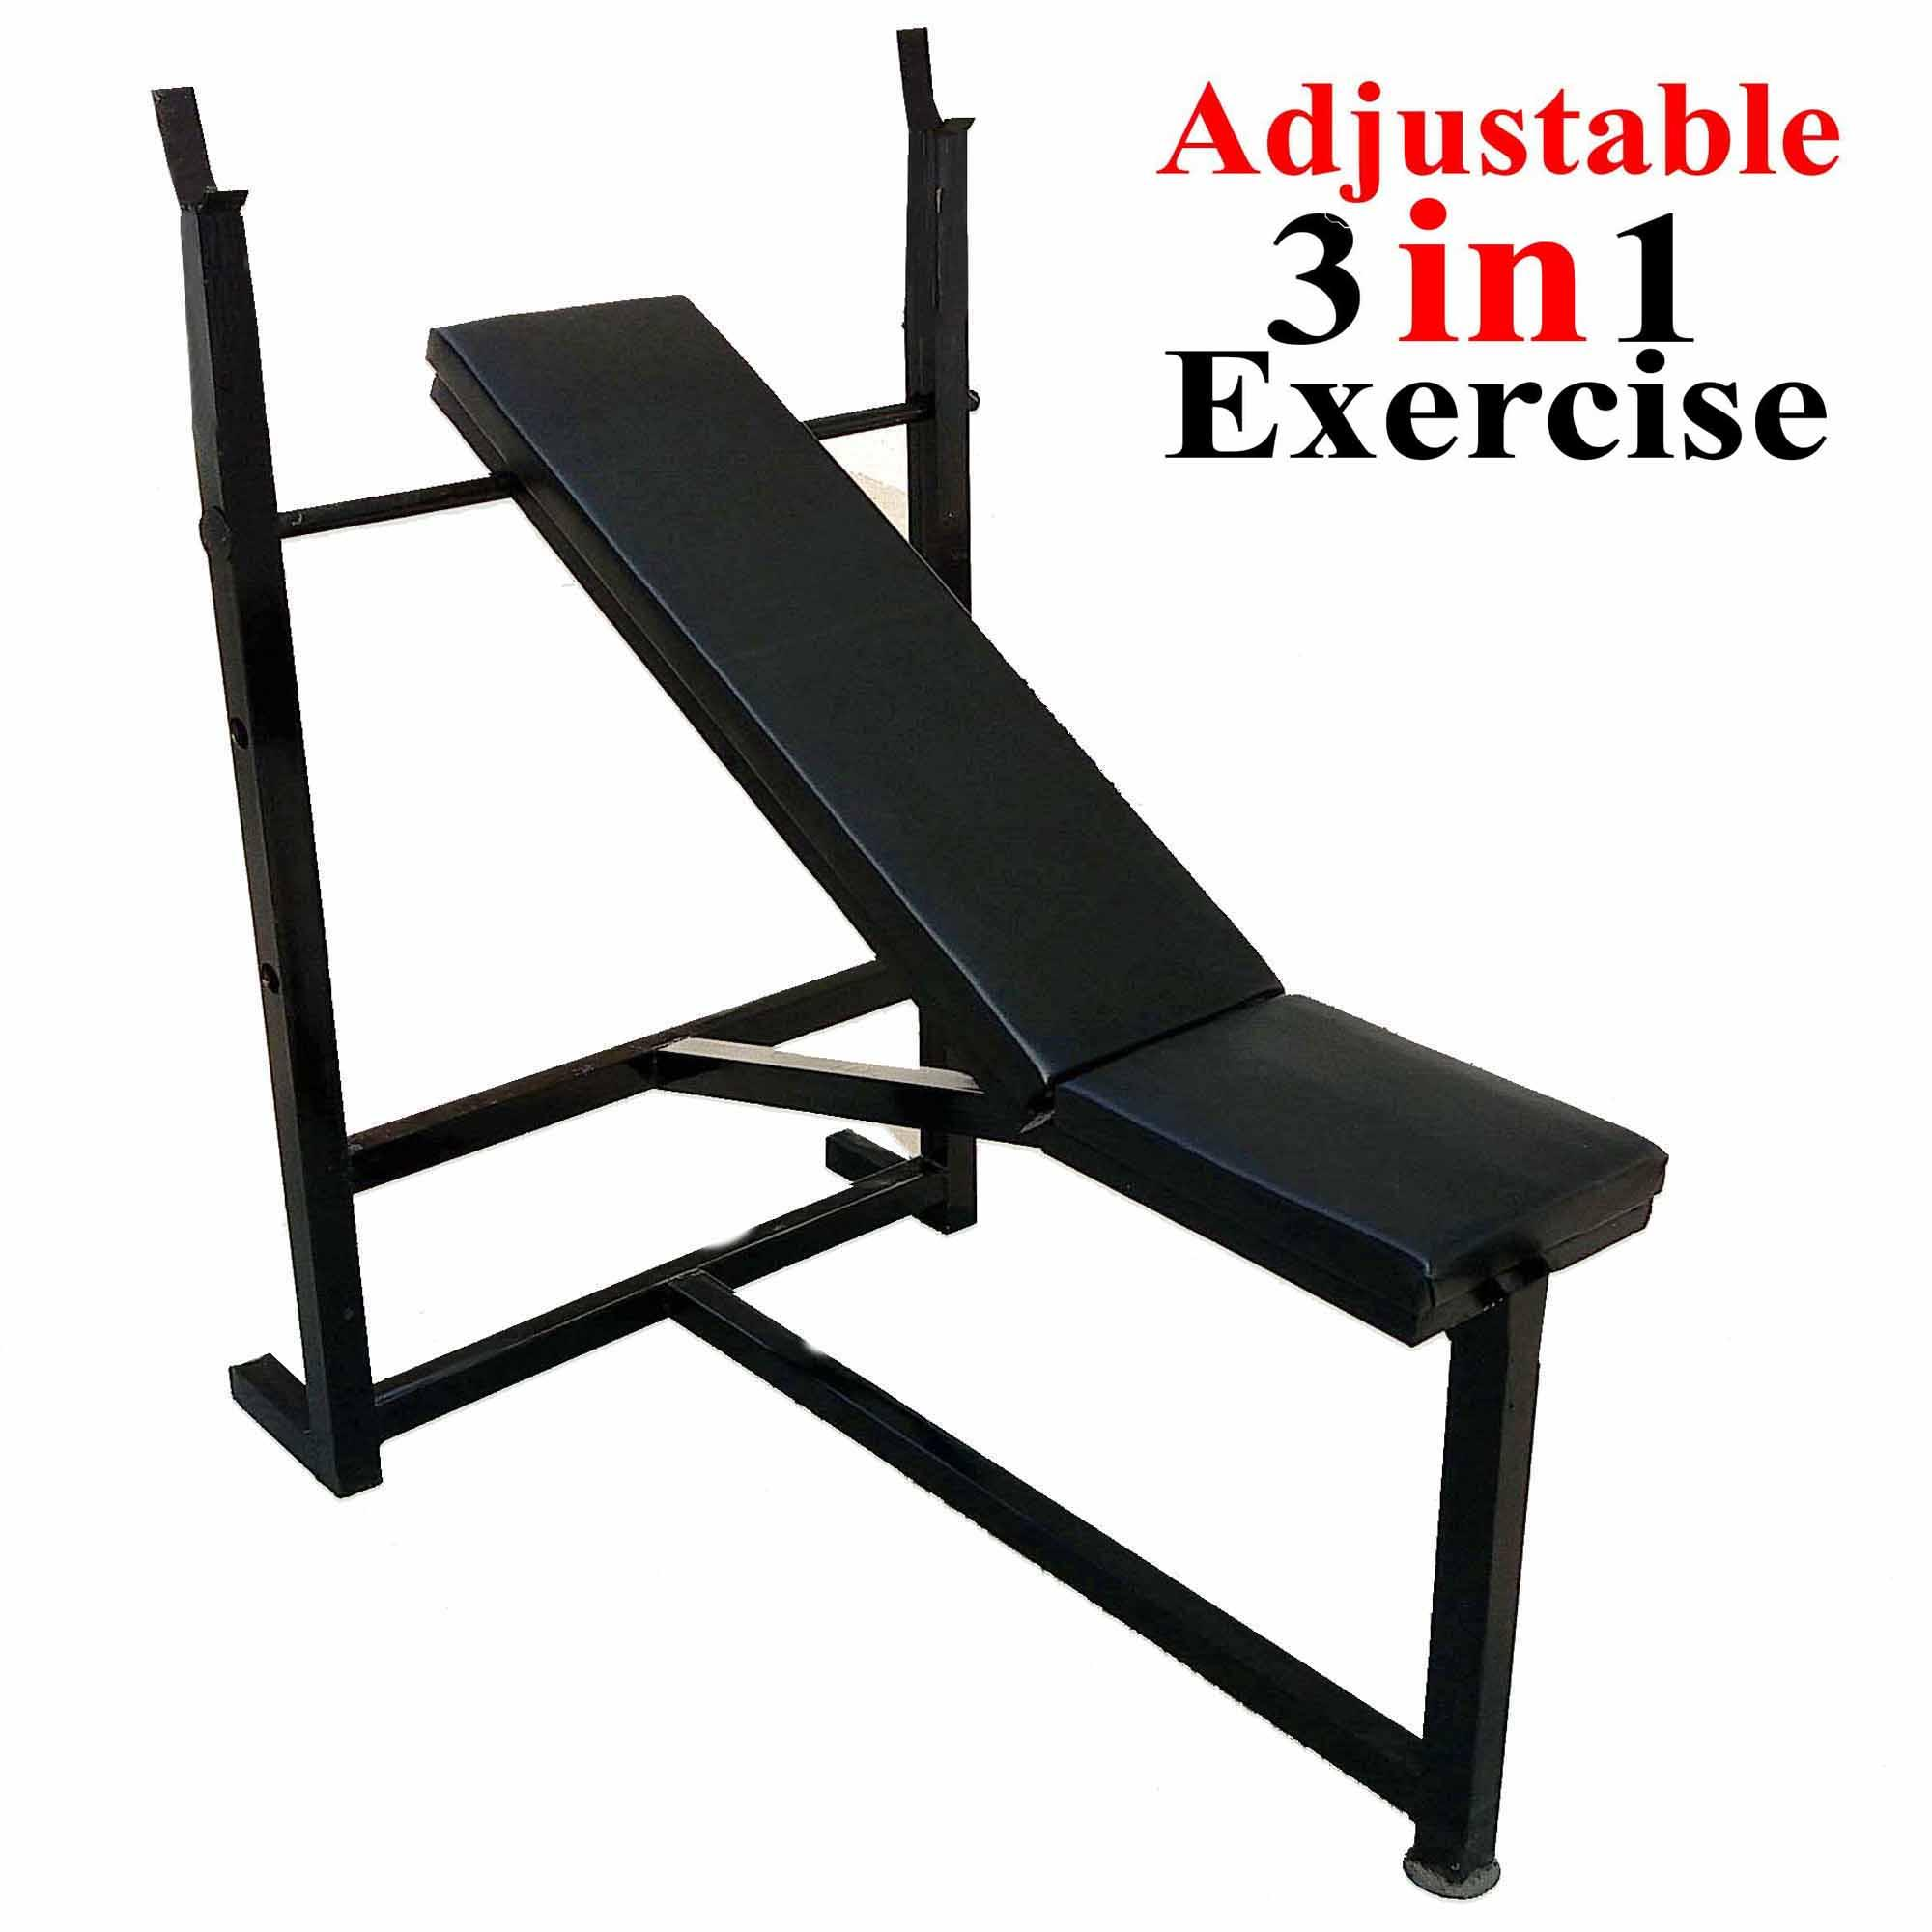 3 Exercise Adjustable Chest Bench Press Incline Decline Straight Chest  Exercise Weight Lifting Body Building Gym